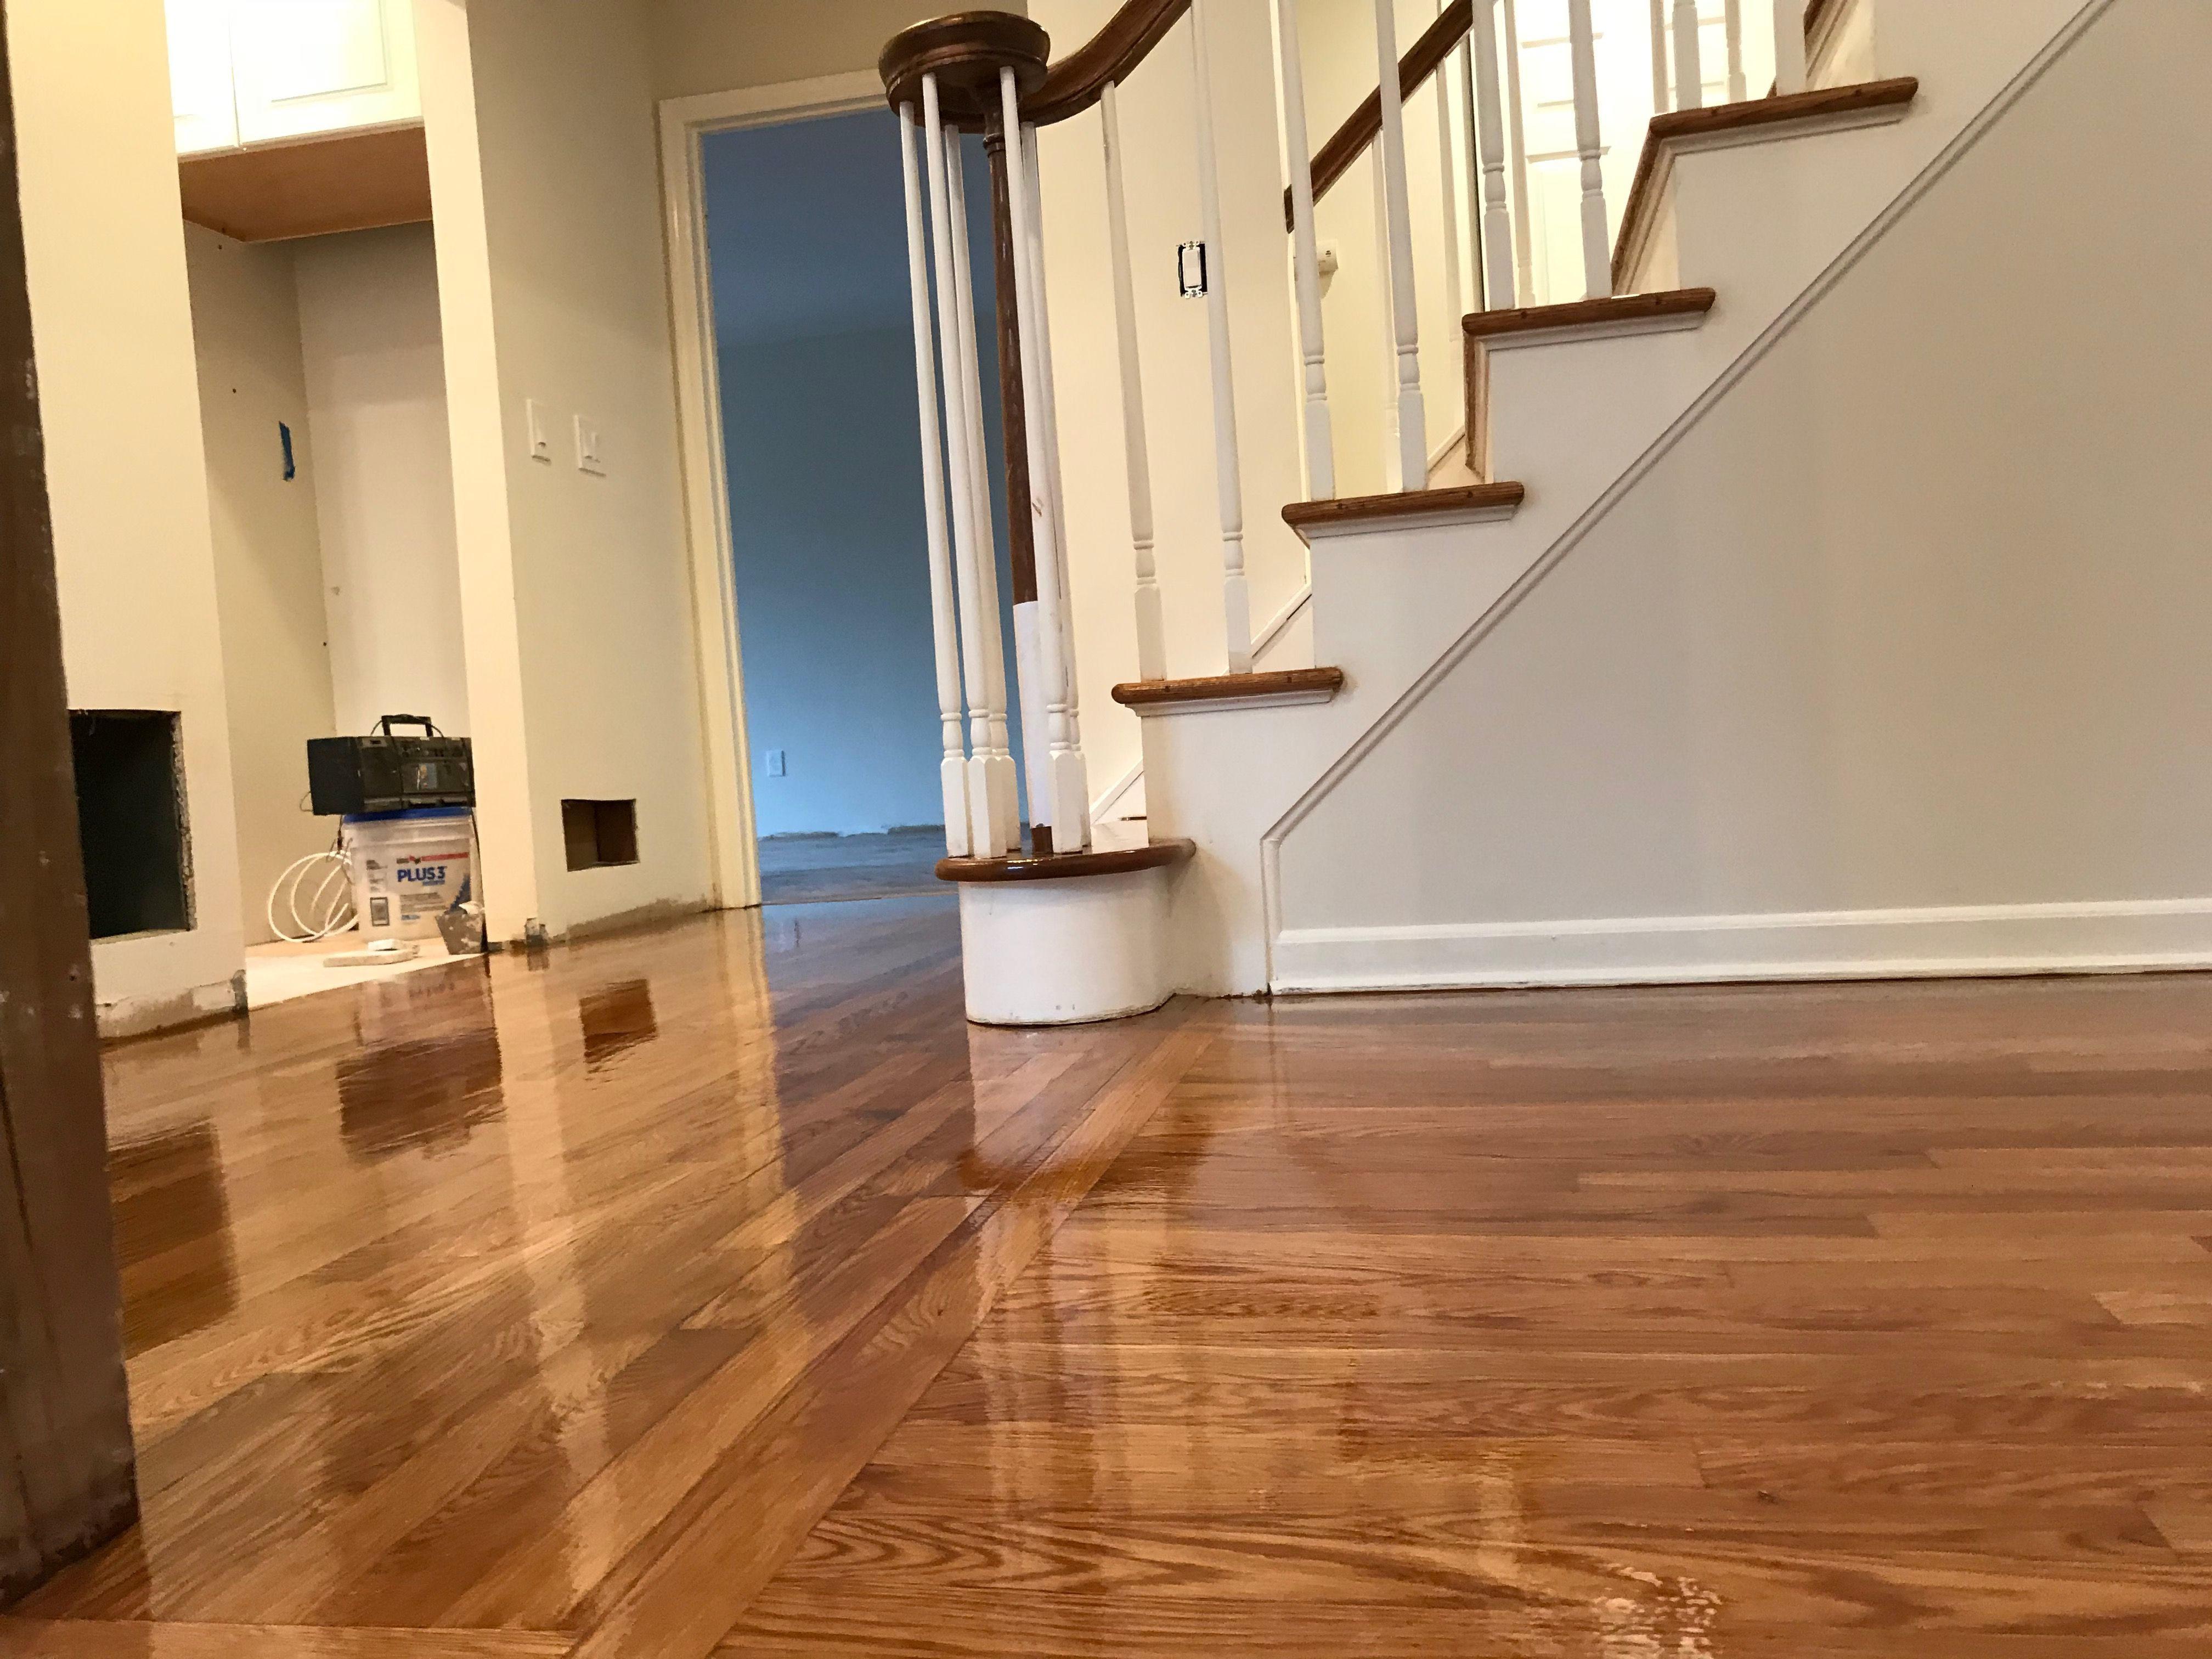 Let us know how can we help you refinishing hardwood